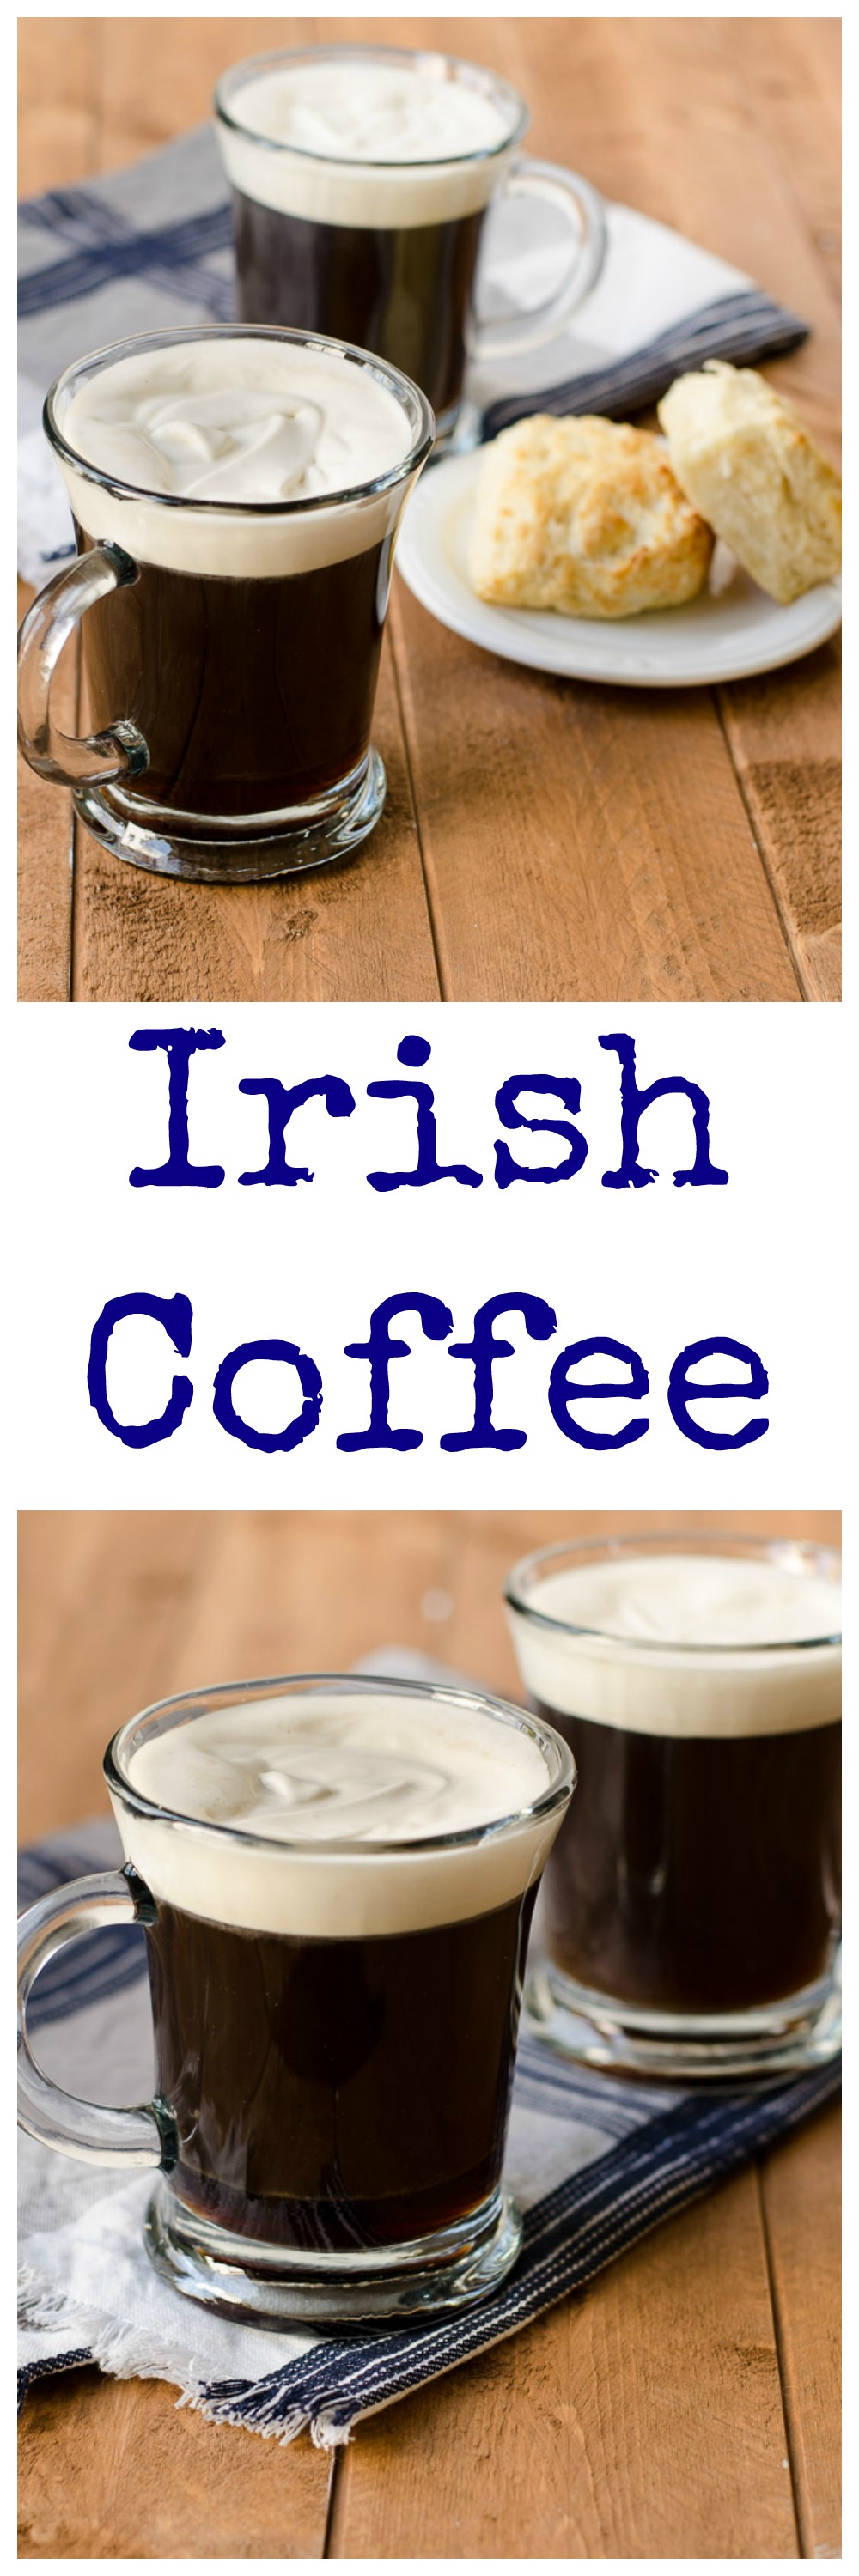 Irish coffee collage